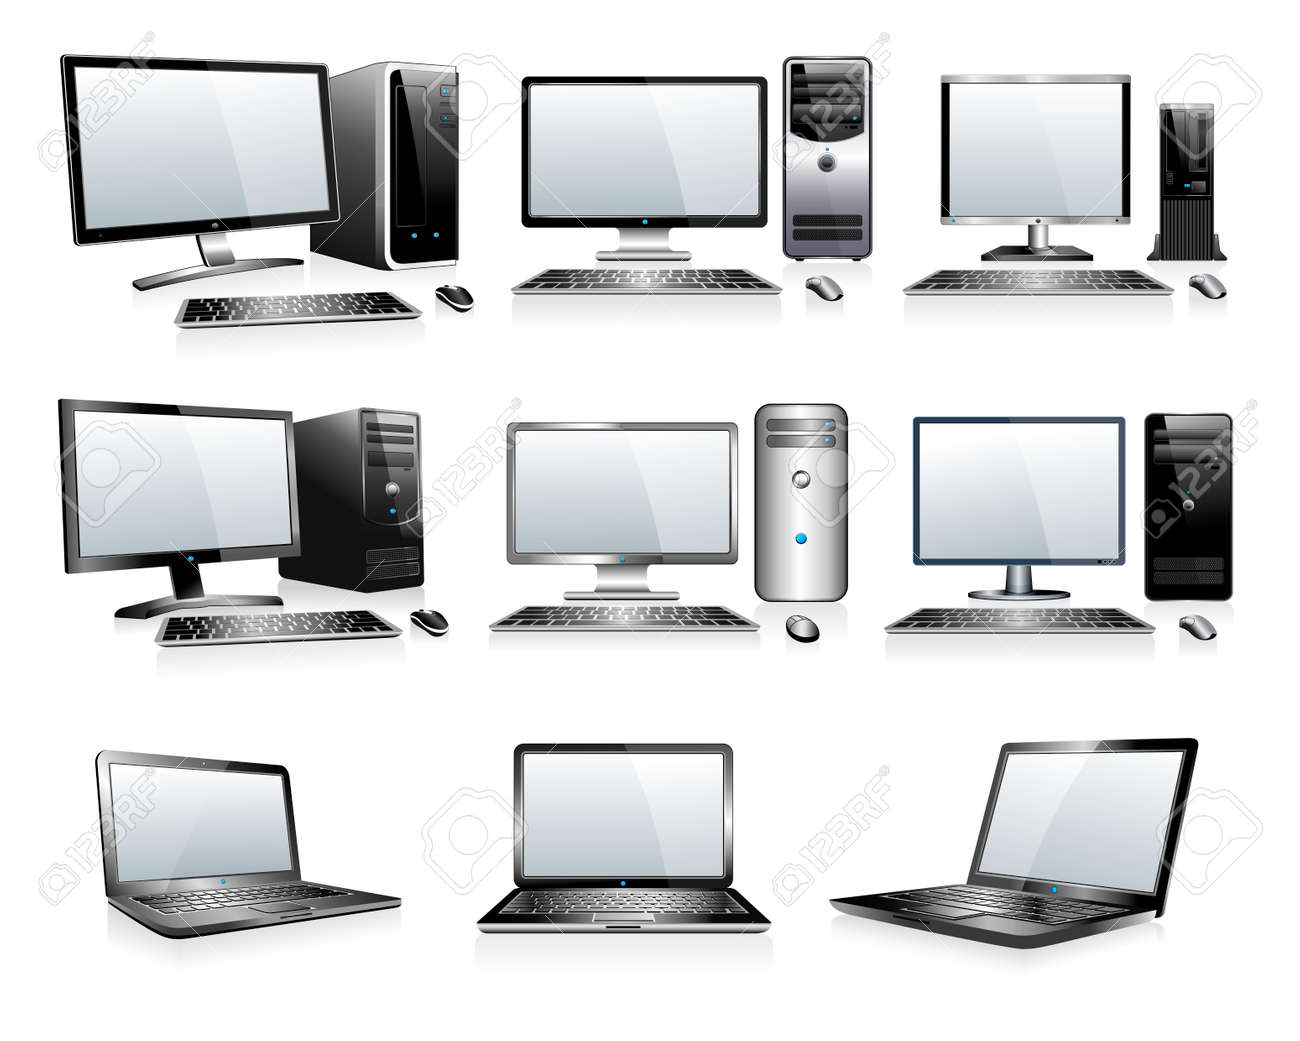 3D and 2D Computers - 29720533